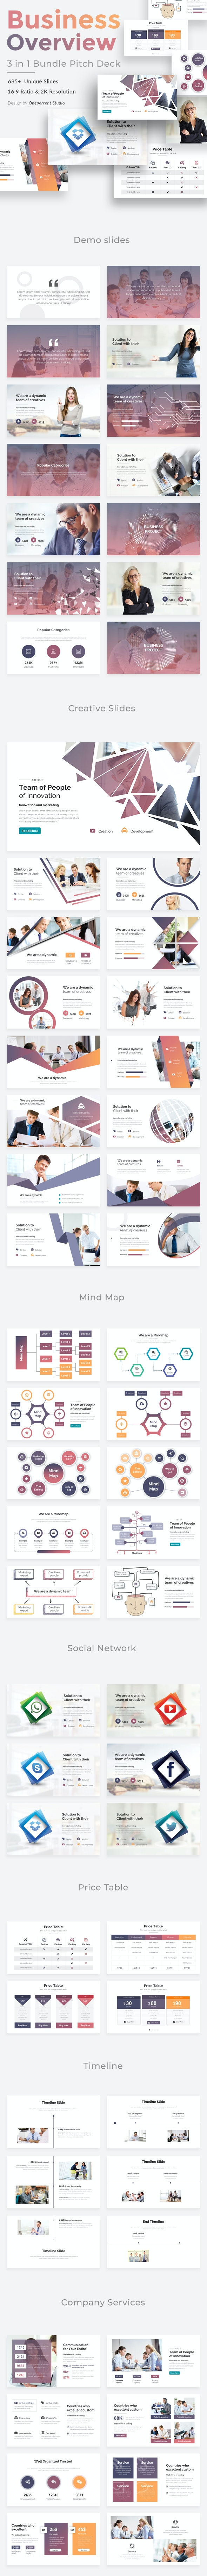 Business Overview 3 in 1 Pitch Deck Bundle Powerpoint Template - Creative PowerPoint Templates